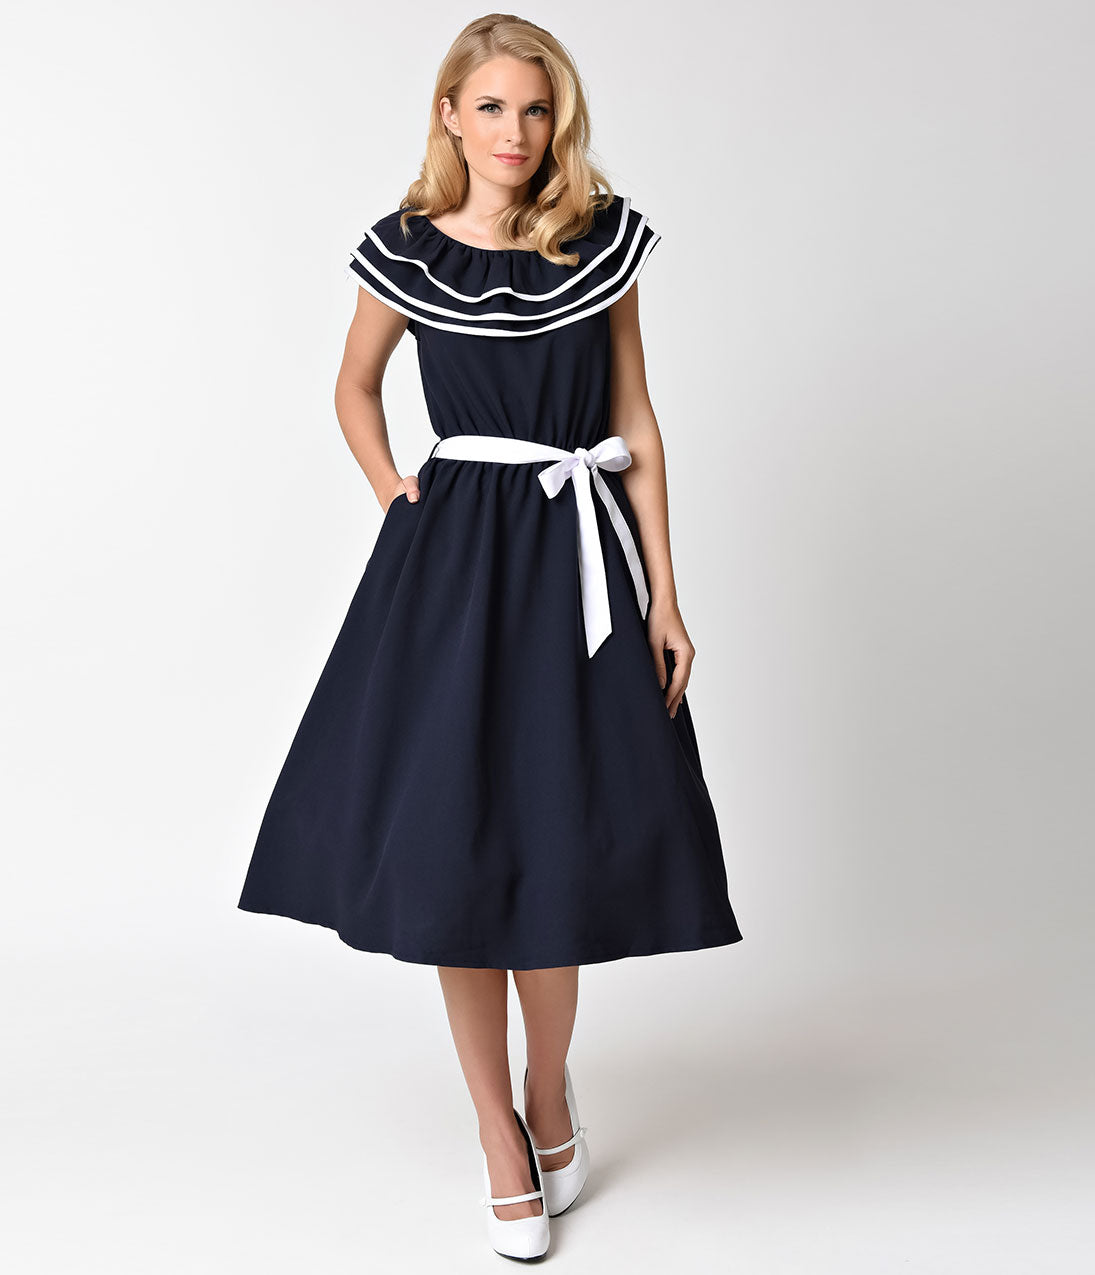 1950s Housewife Dress | 50s Day Dresses Voodoo Vixen Navy Blue Nautical Ruffle Hope Swing Dress $39.00 AT vintagedancer.com